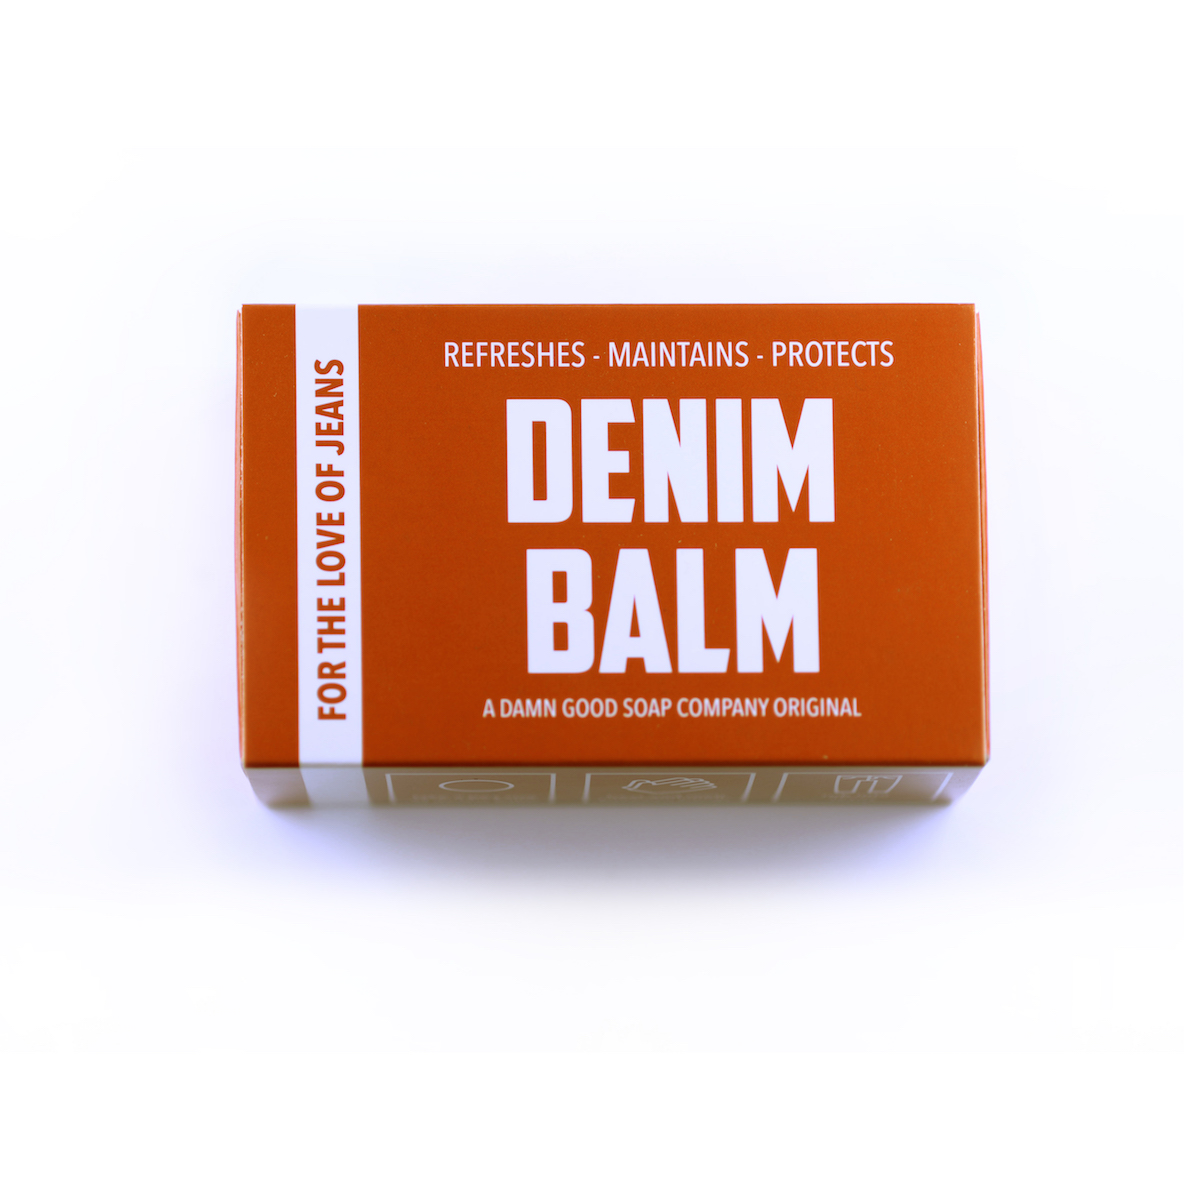 Damn Good Denim Balm